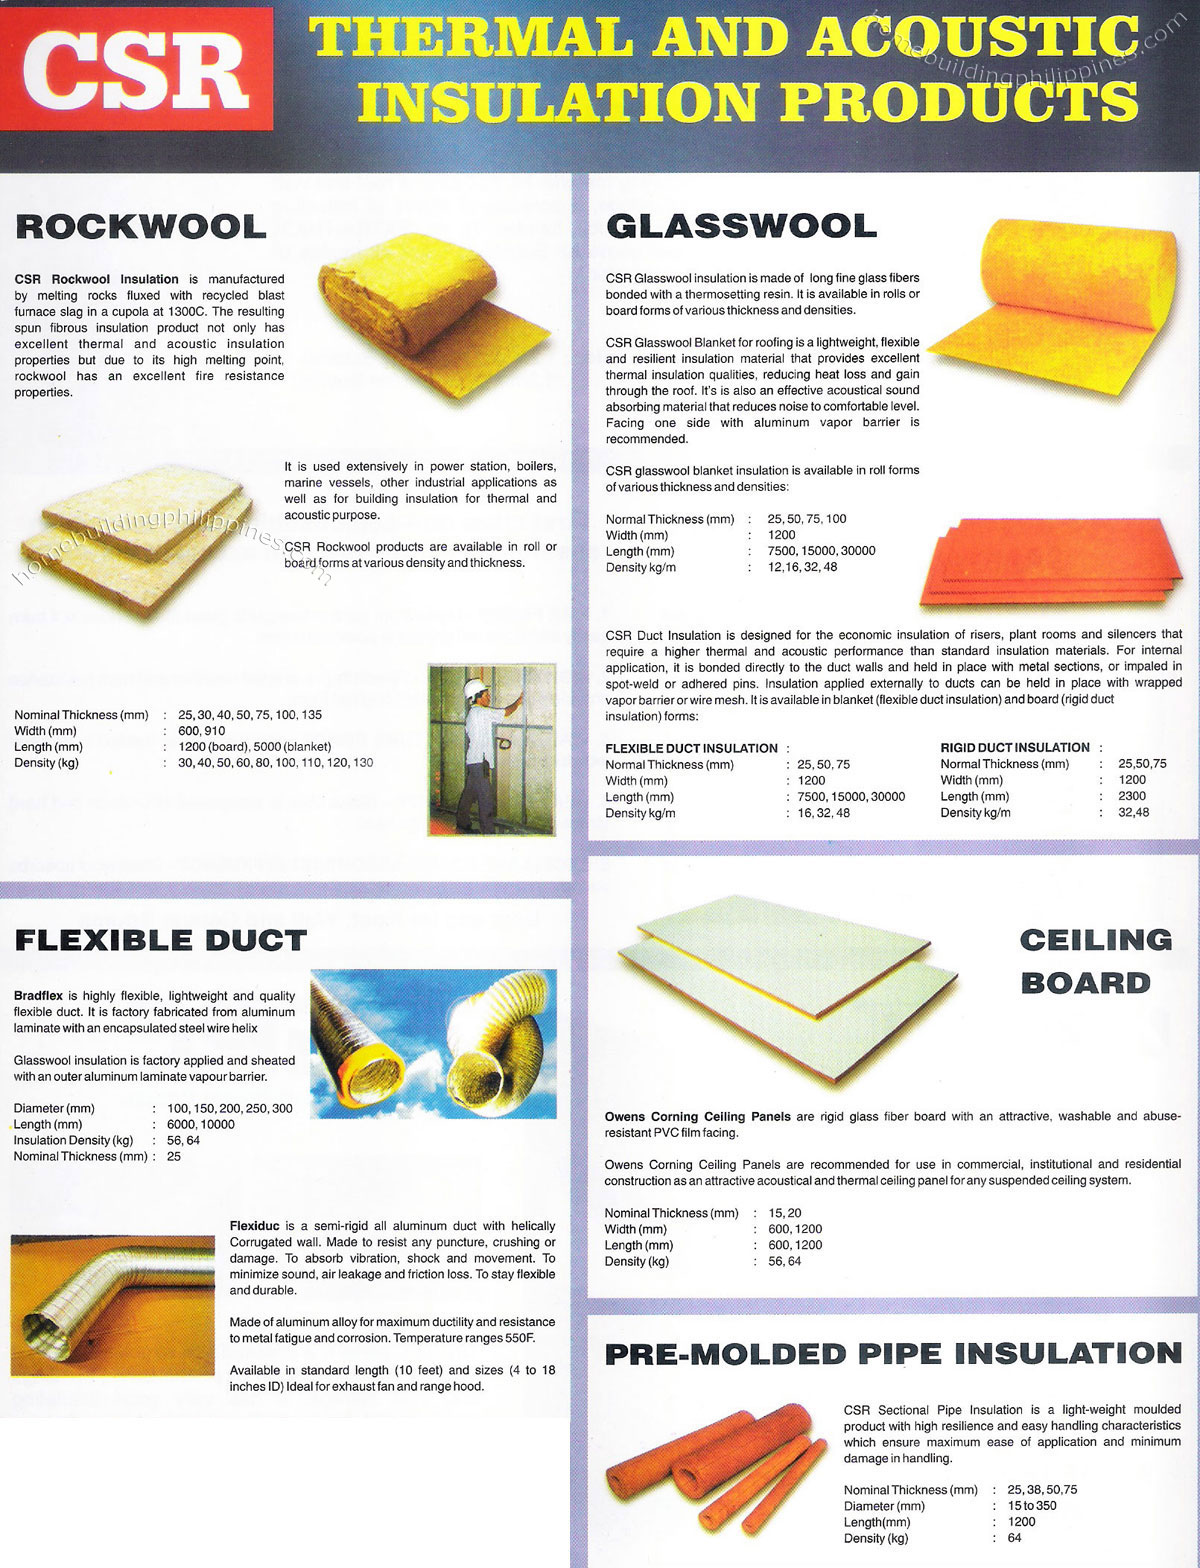 Csr Thermal And Acoustic Insulation Rockwool Glasswool